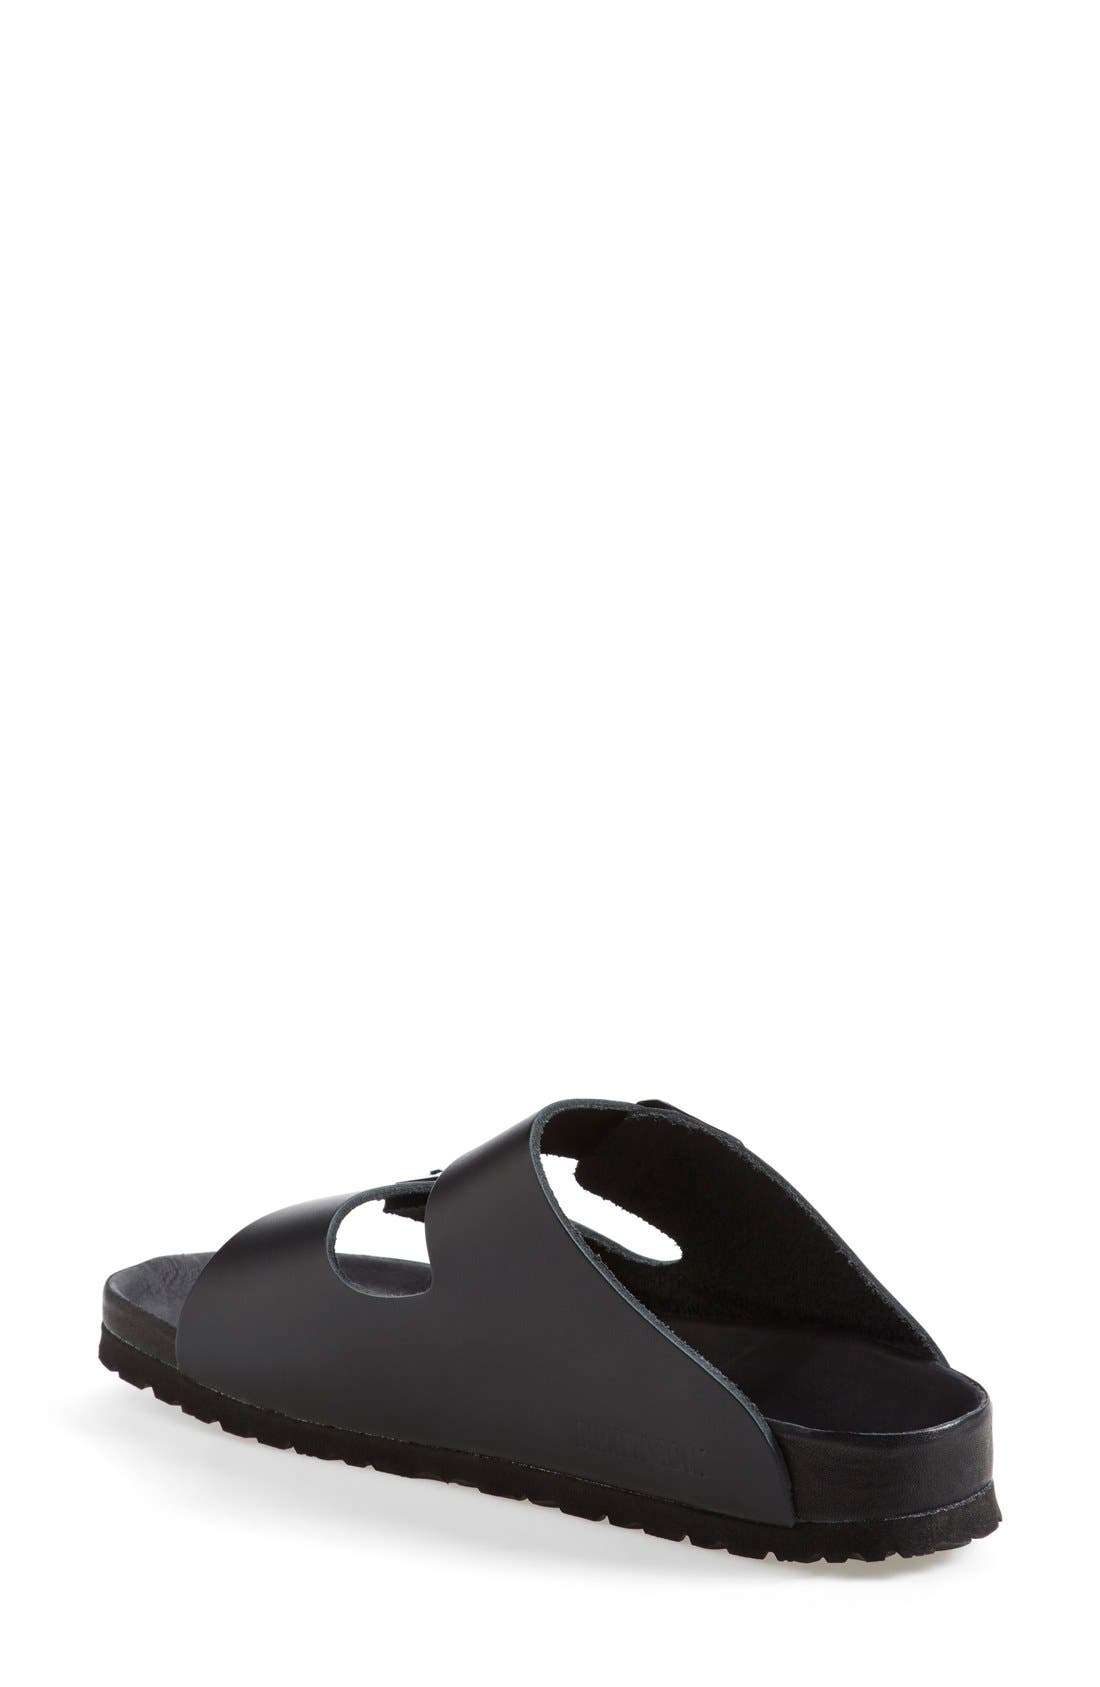 Alternate Image 2  - Birkenstock 'Monterey' Leather Sandal